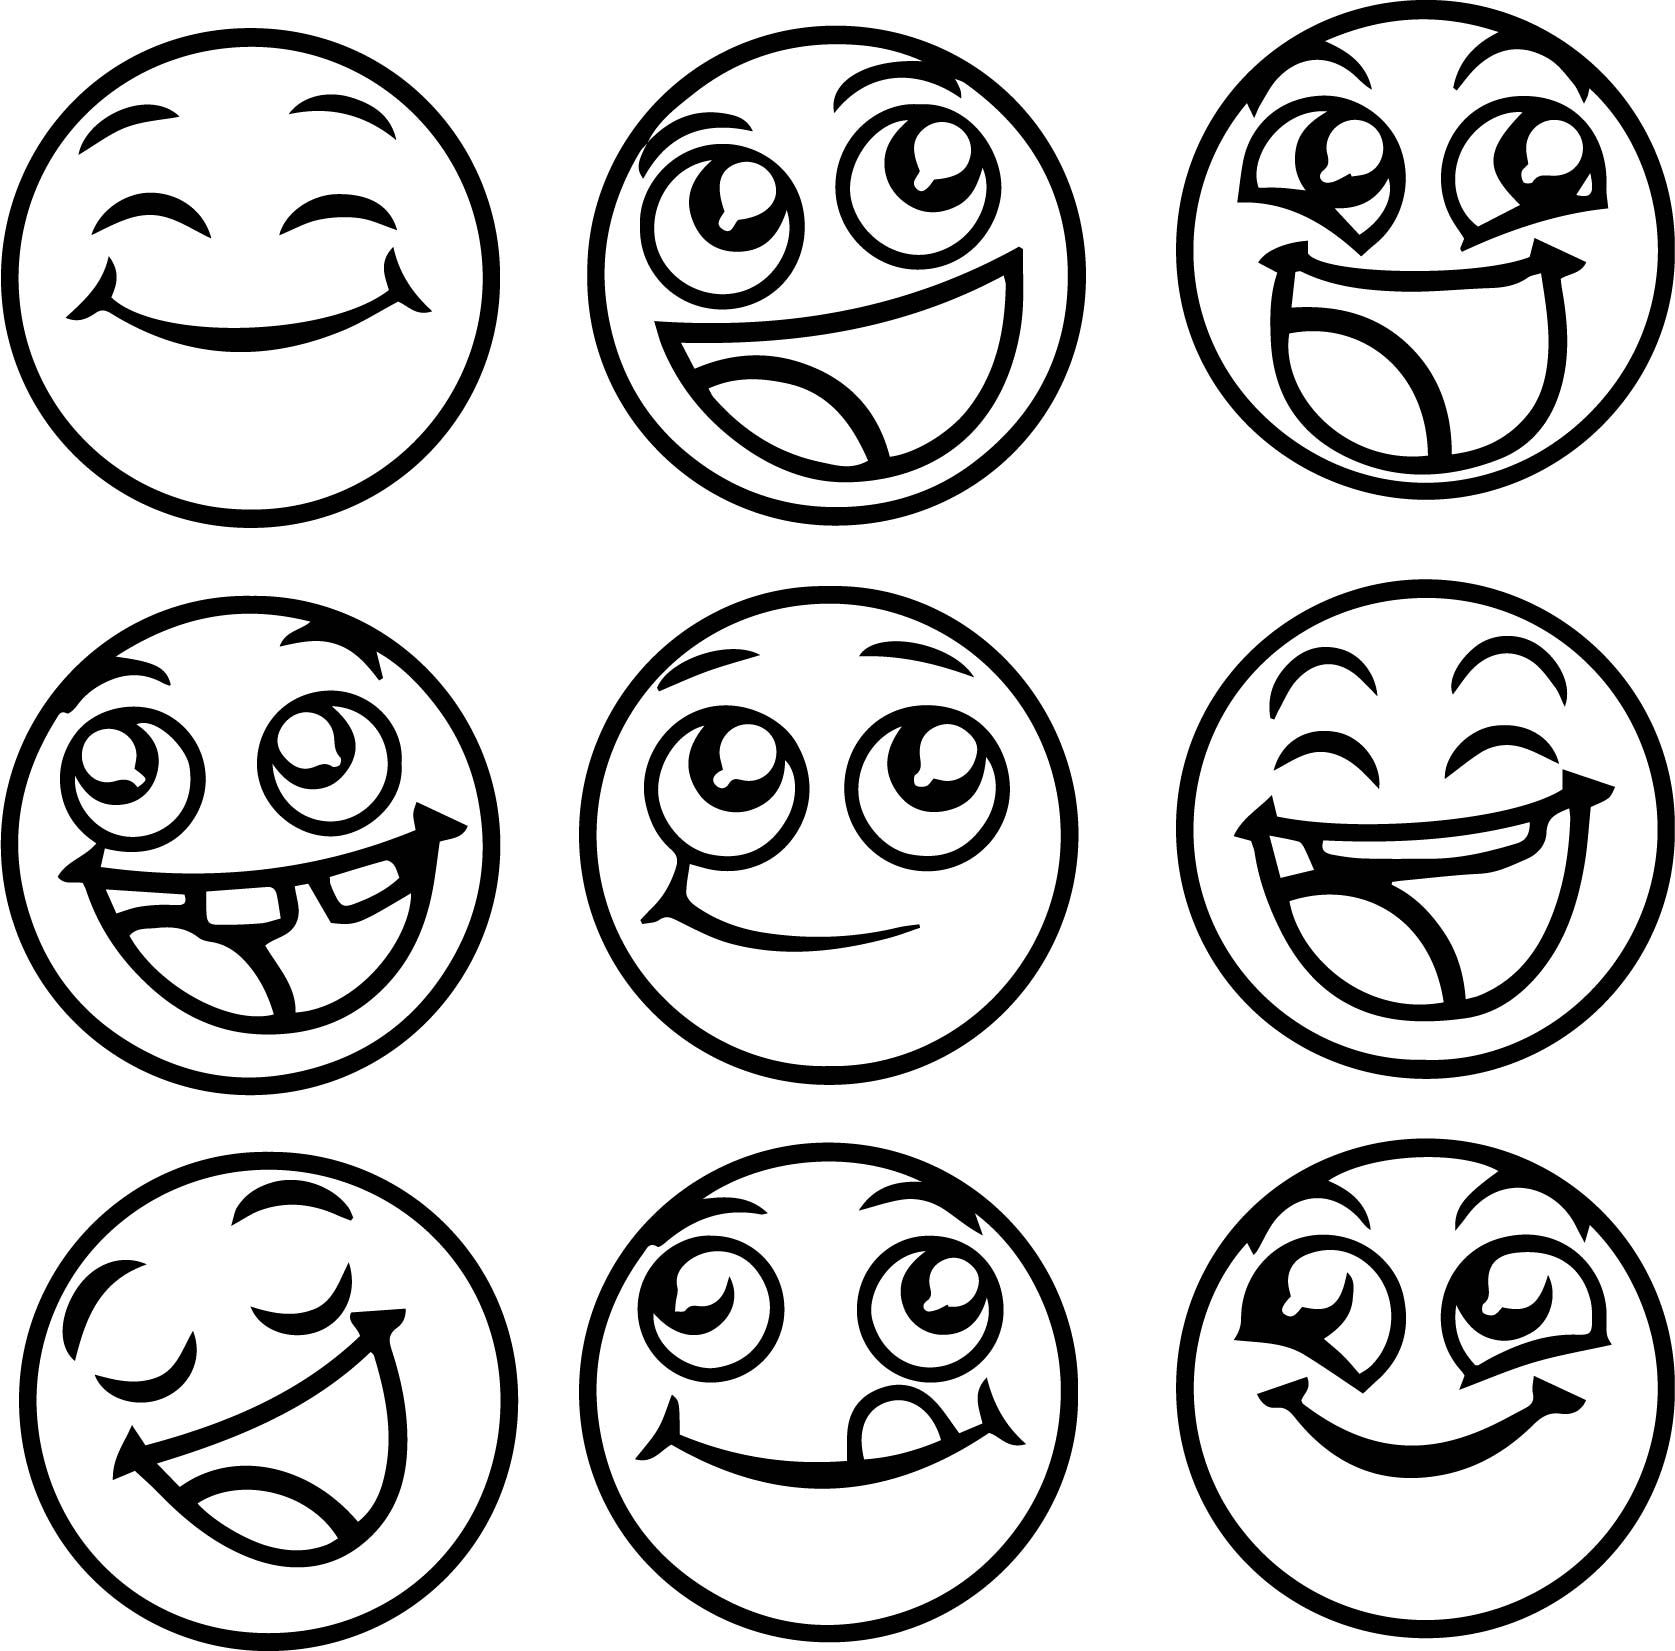 Happy Emoticons All Coloring Page Emoji Coloring Pages Printable Coloring Pages Coloring Pages